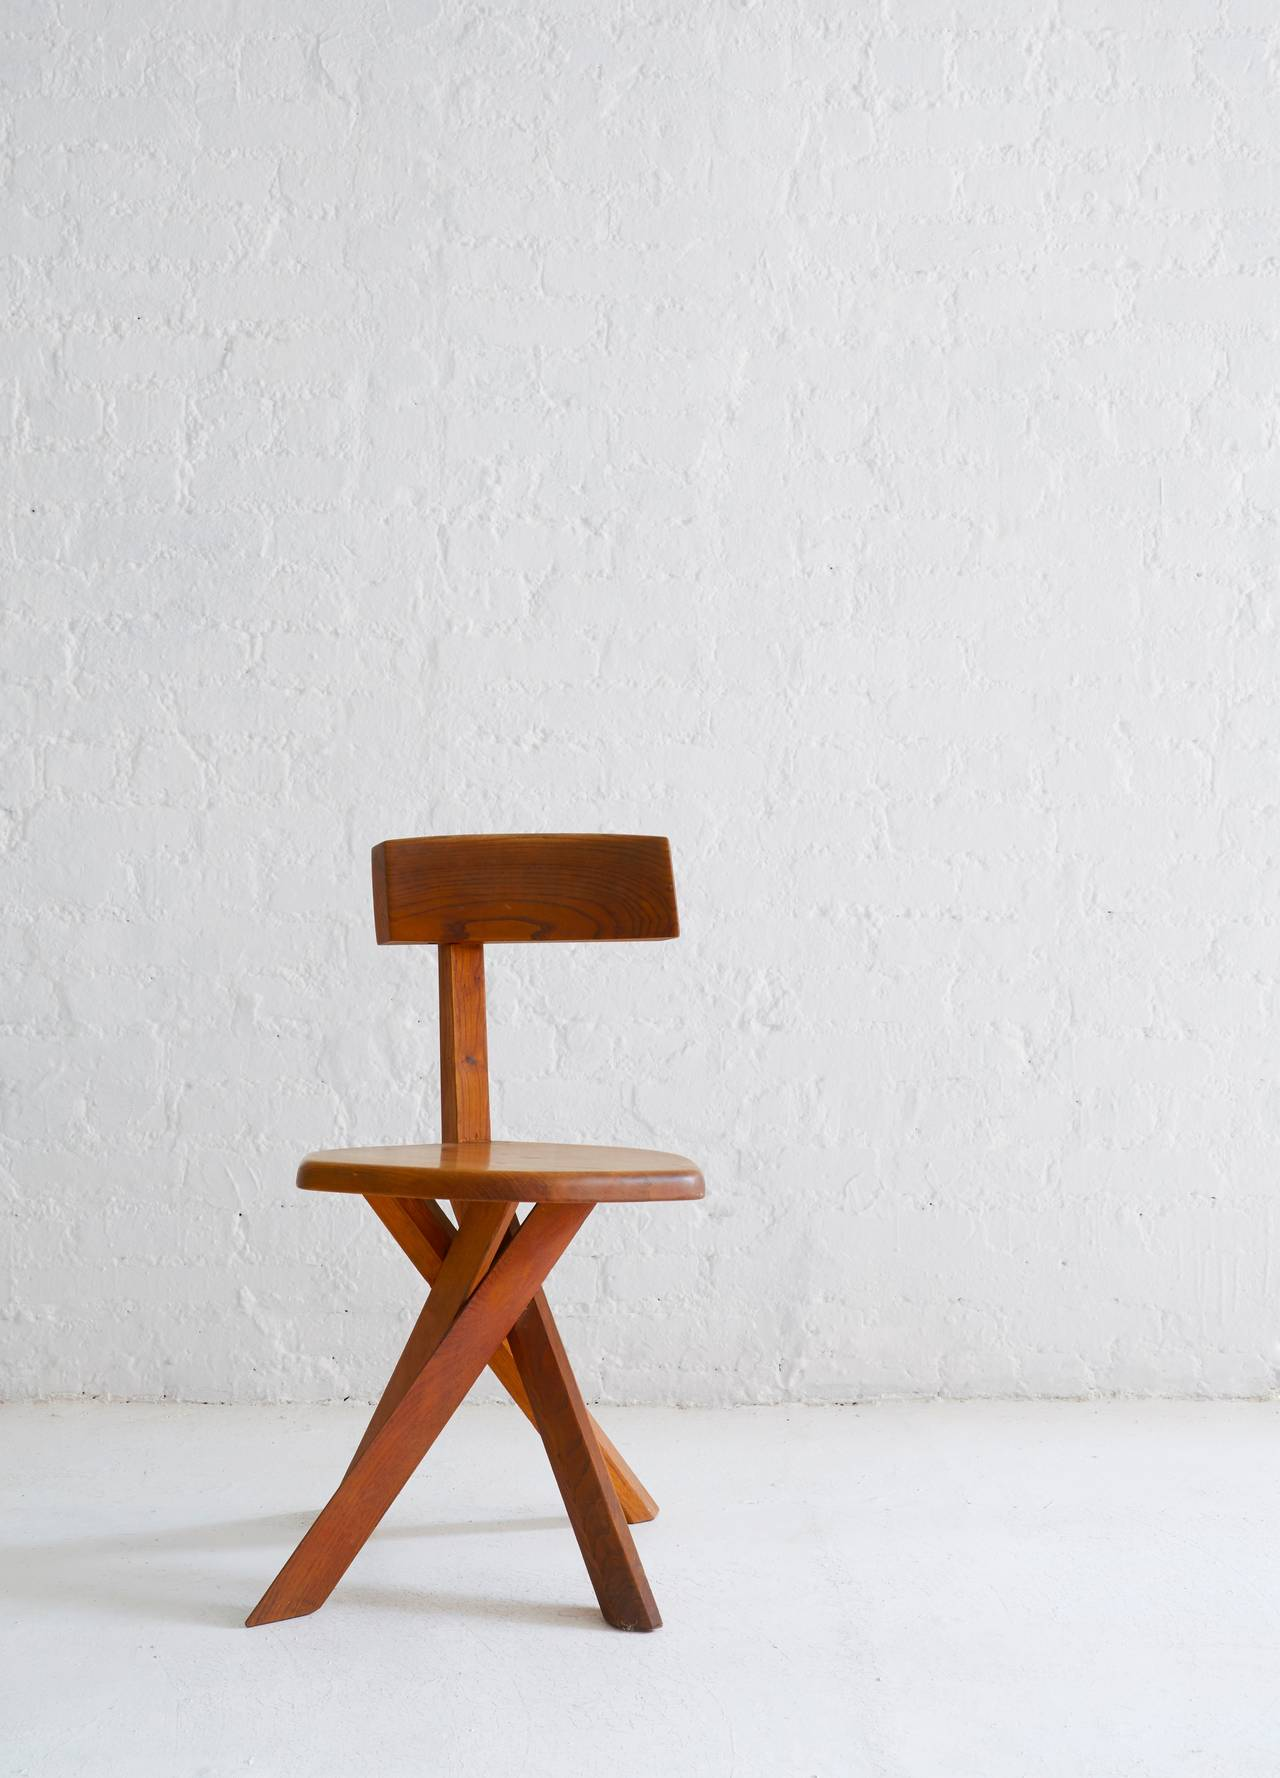 Pierre Chapo's famous solid oak asymmetrical chair with four twisted legs.